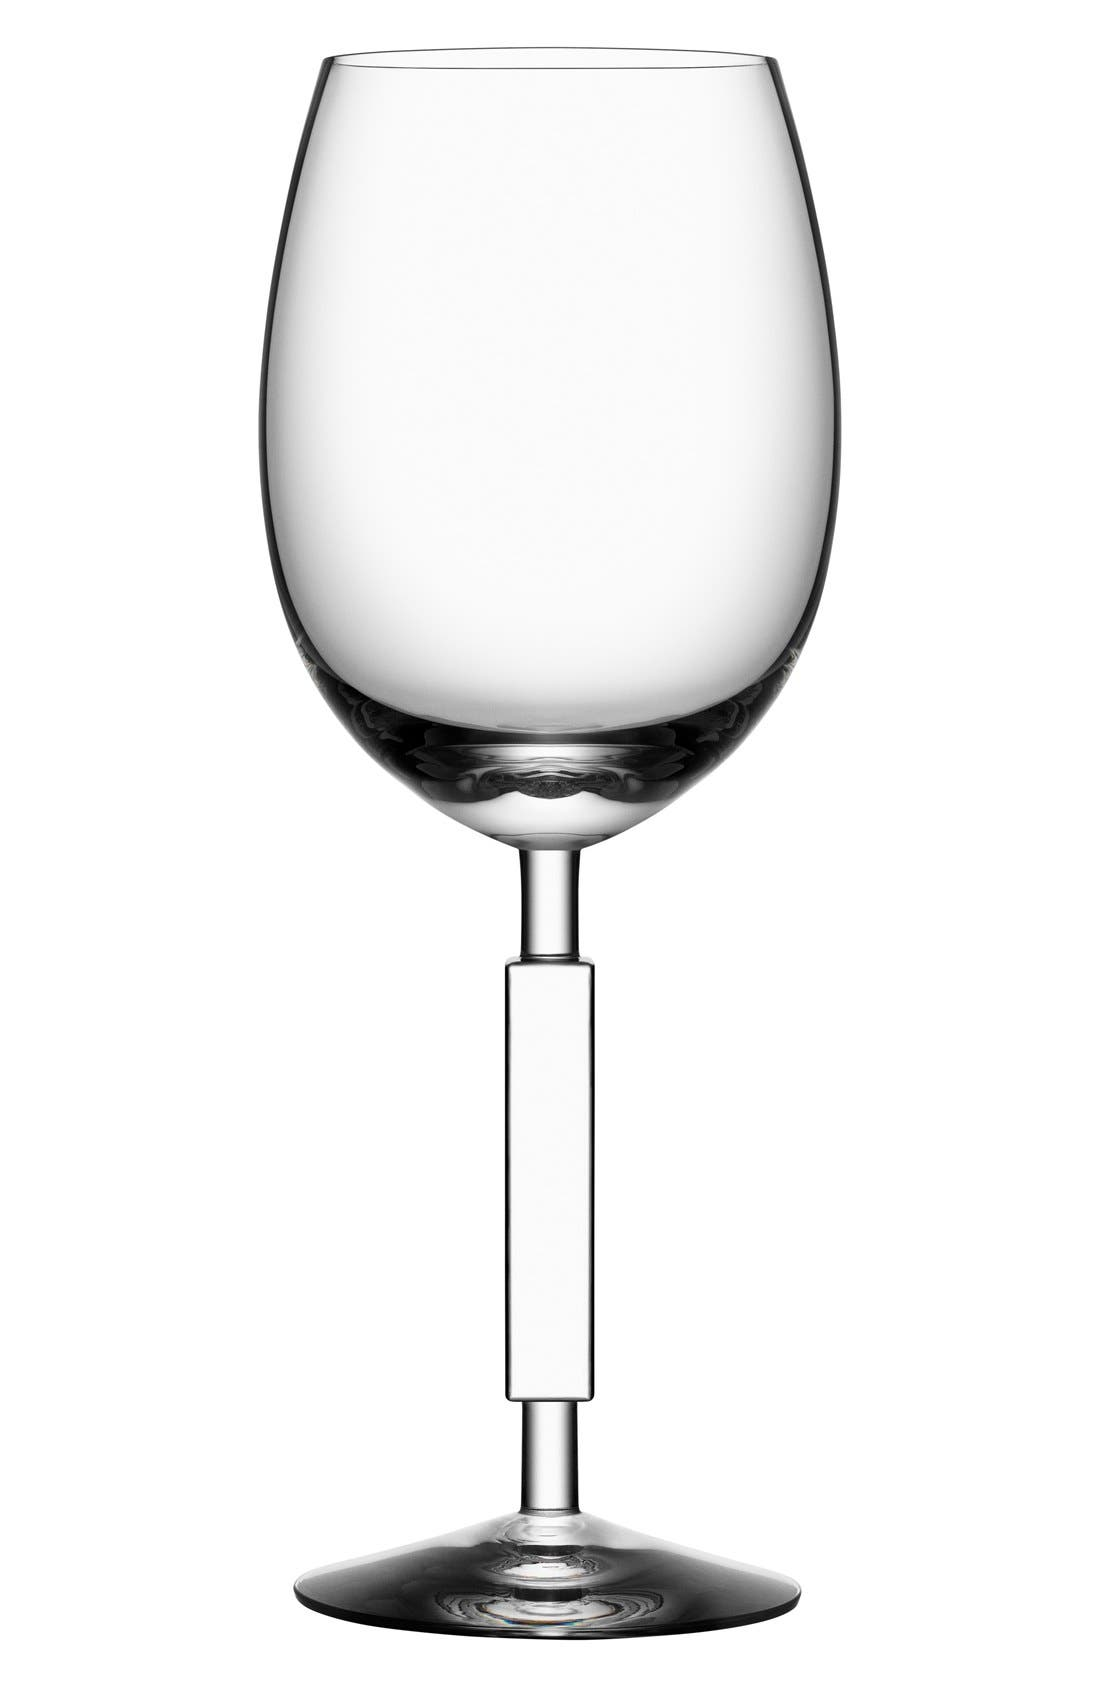 'Unique' White Wine Glass,                             Main thumbnail 1, color,                             WHITE WINE